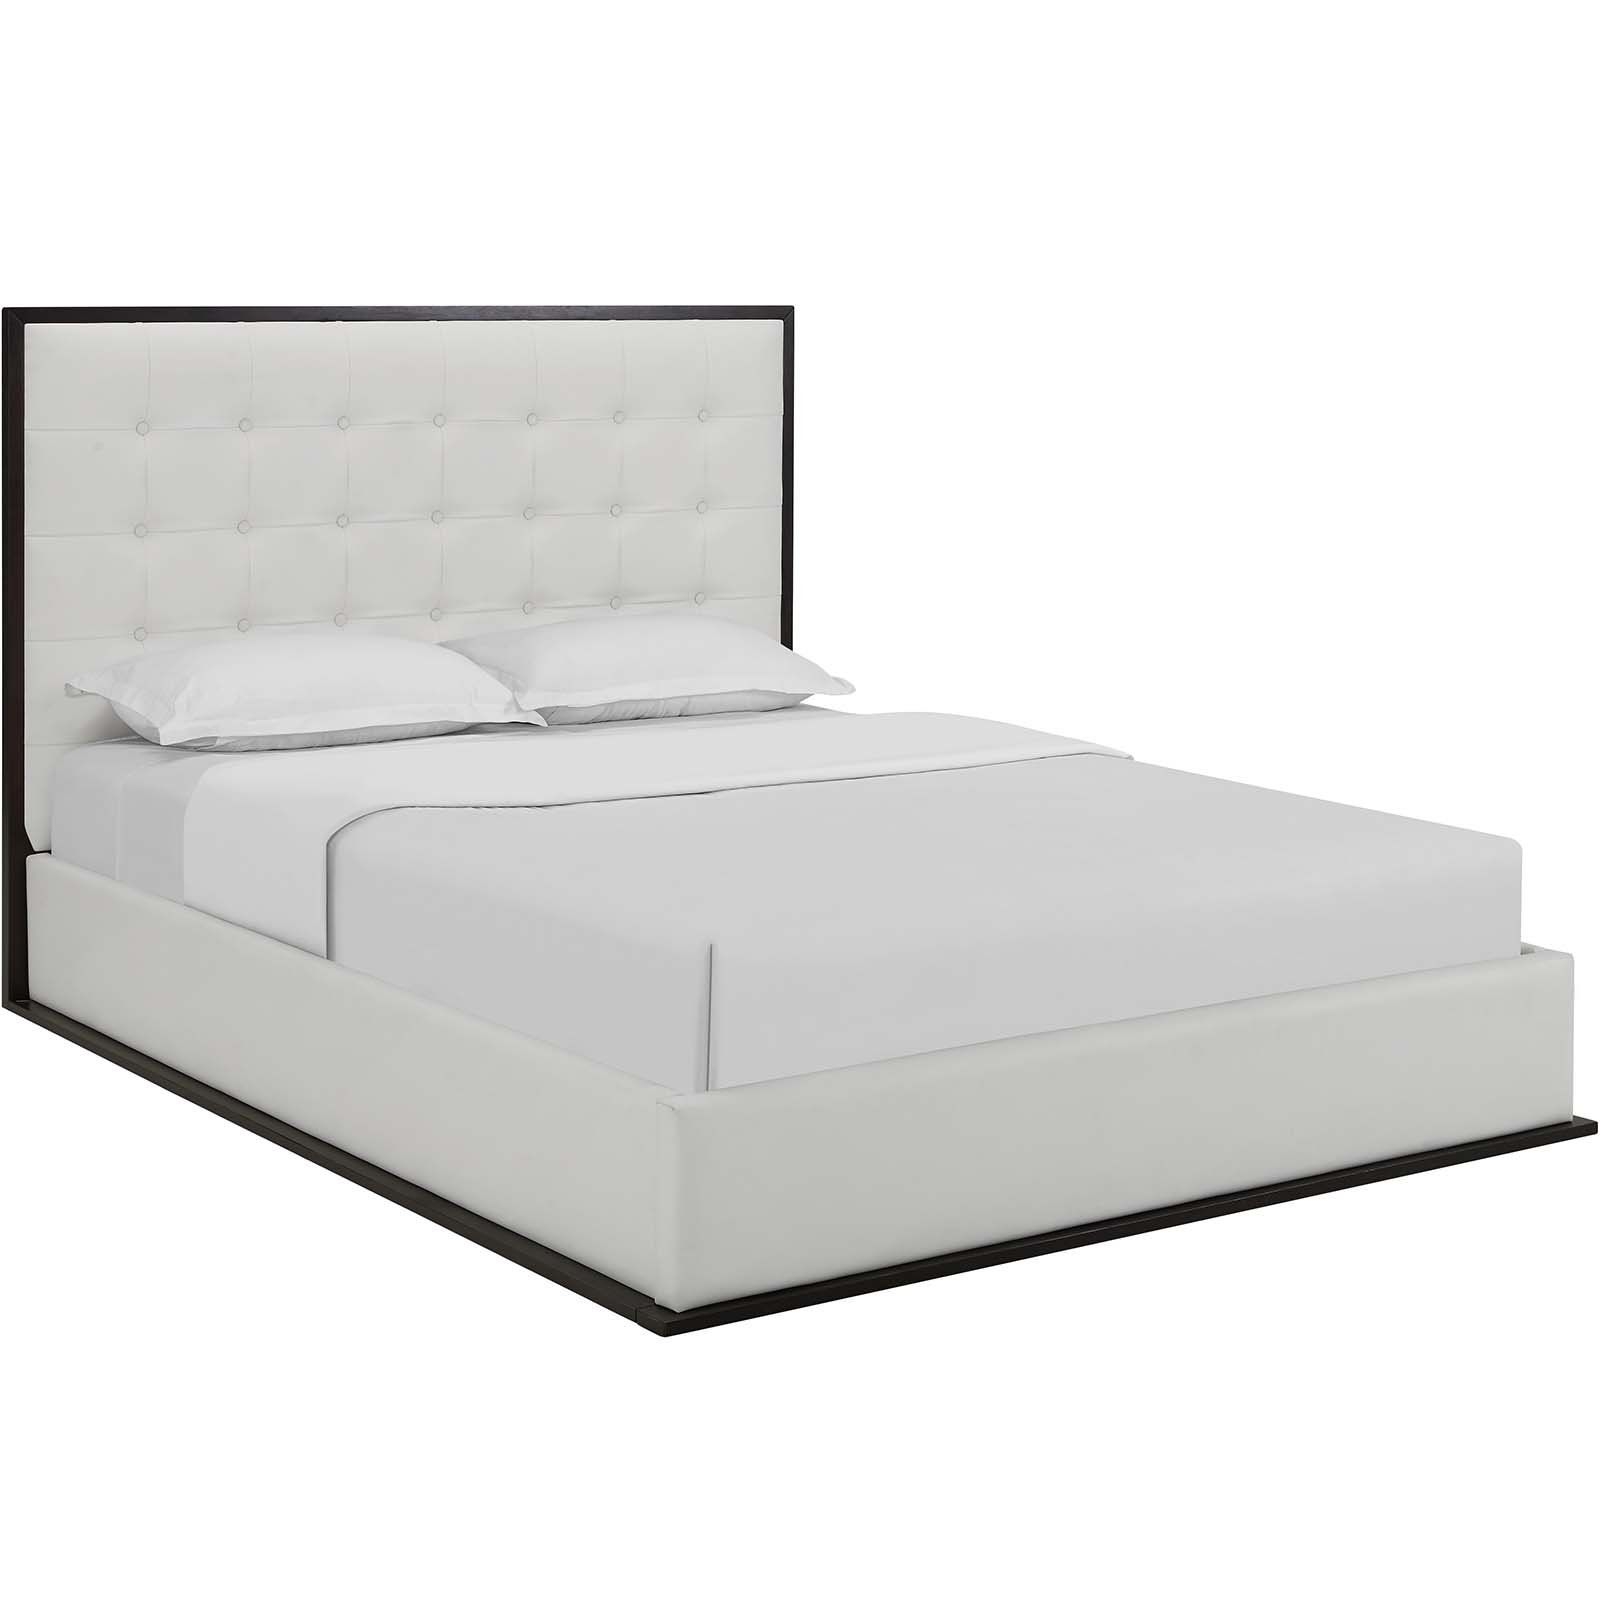 a6fe2c378965e7 Modway Beds on sale. MOD-5498-CAP-BRN Madeline Queen Faux Leather ...